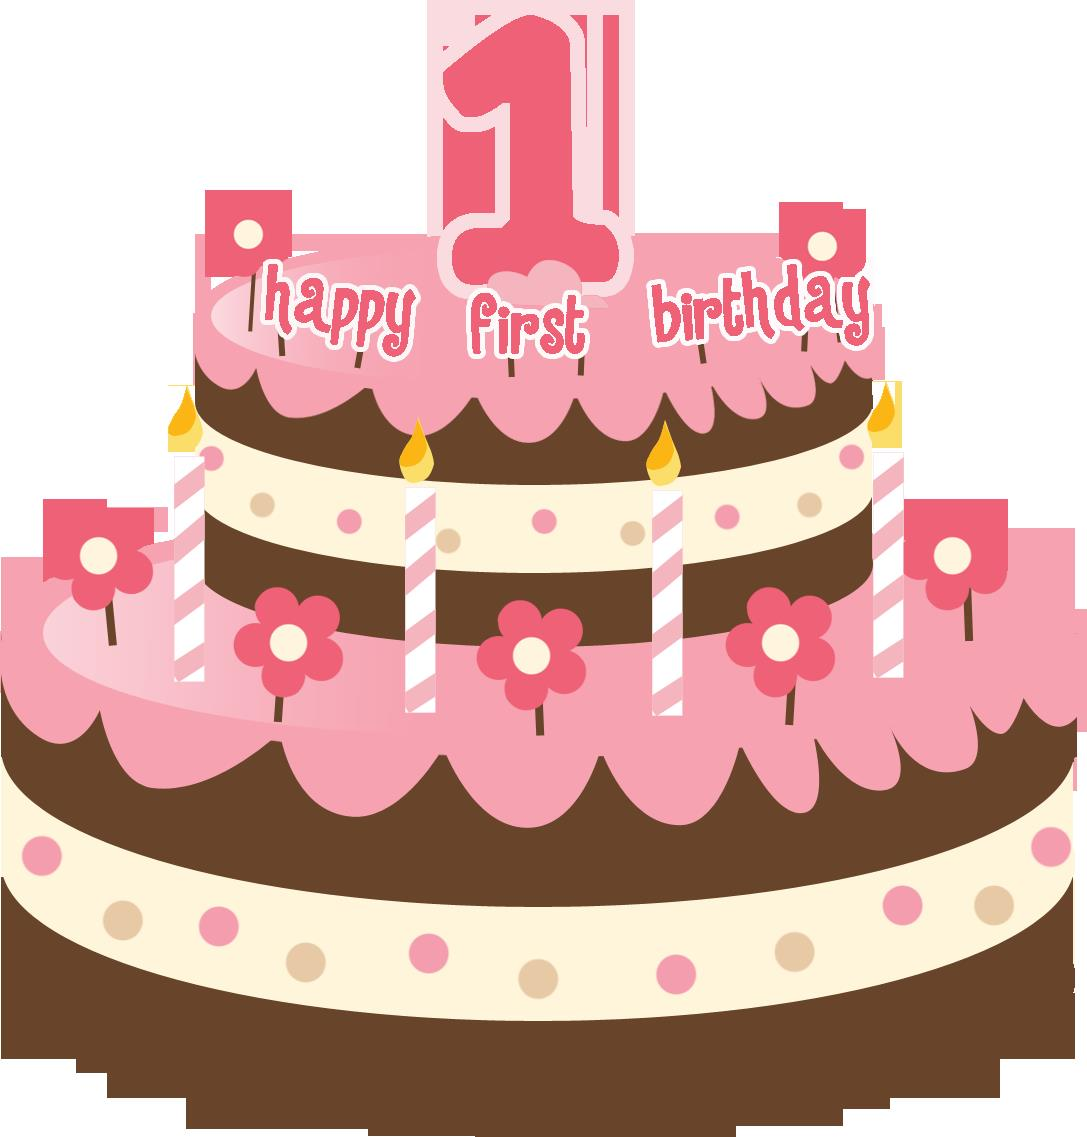 clipart images of birthday cakes ; happy-birthday-cake-clipart-20